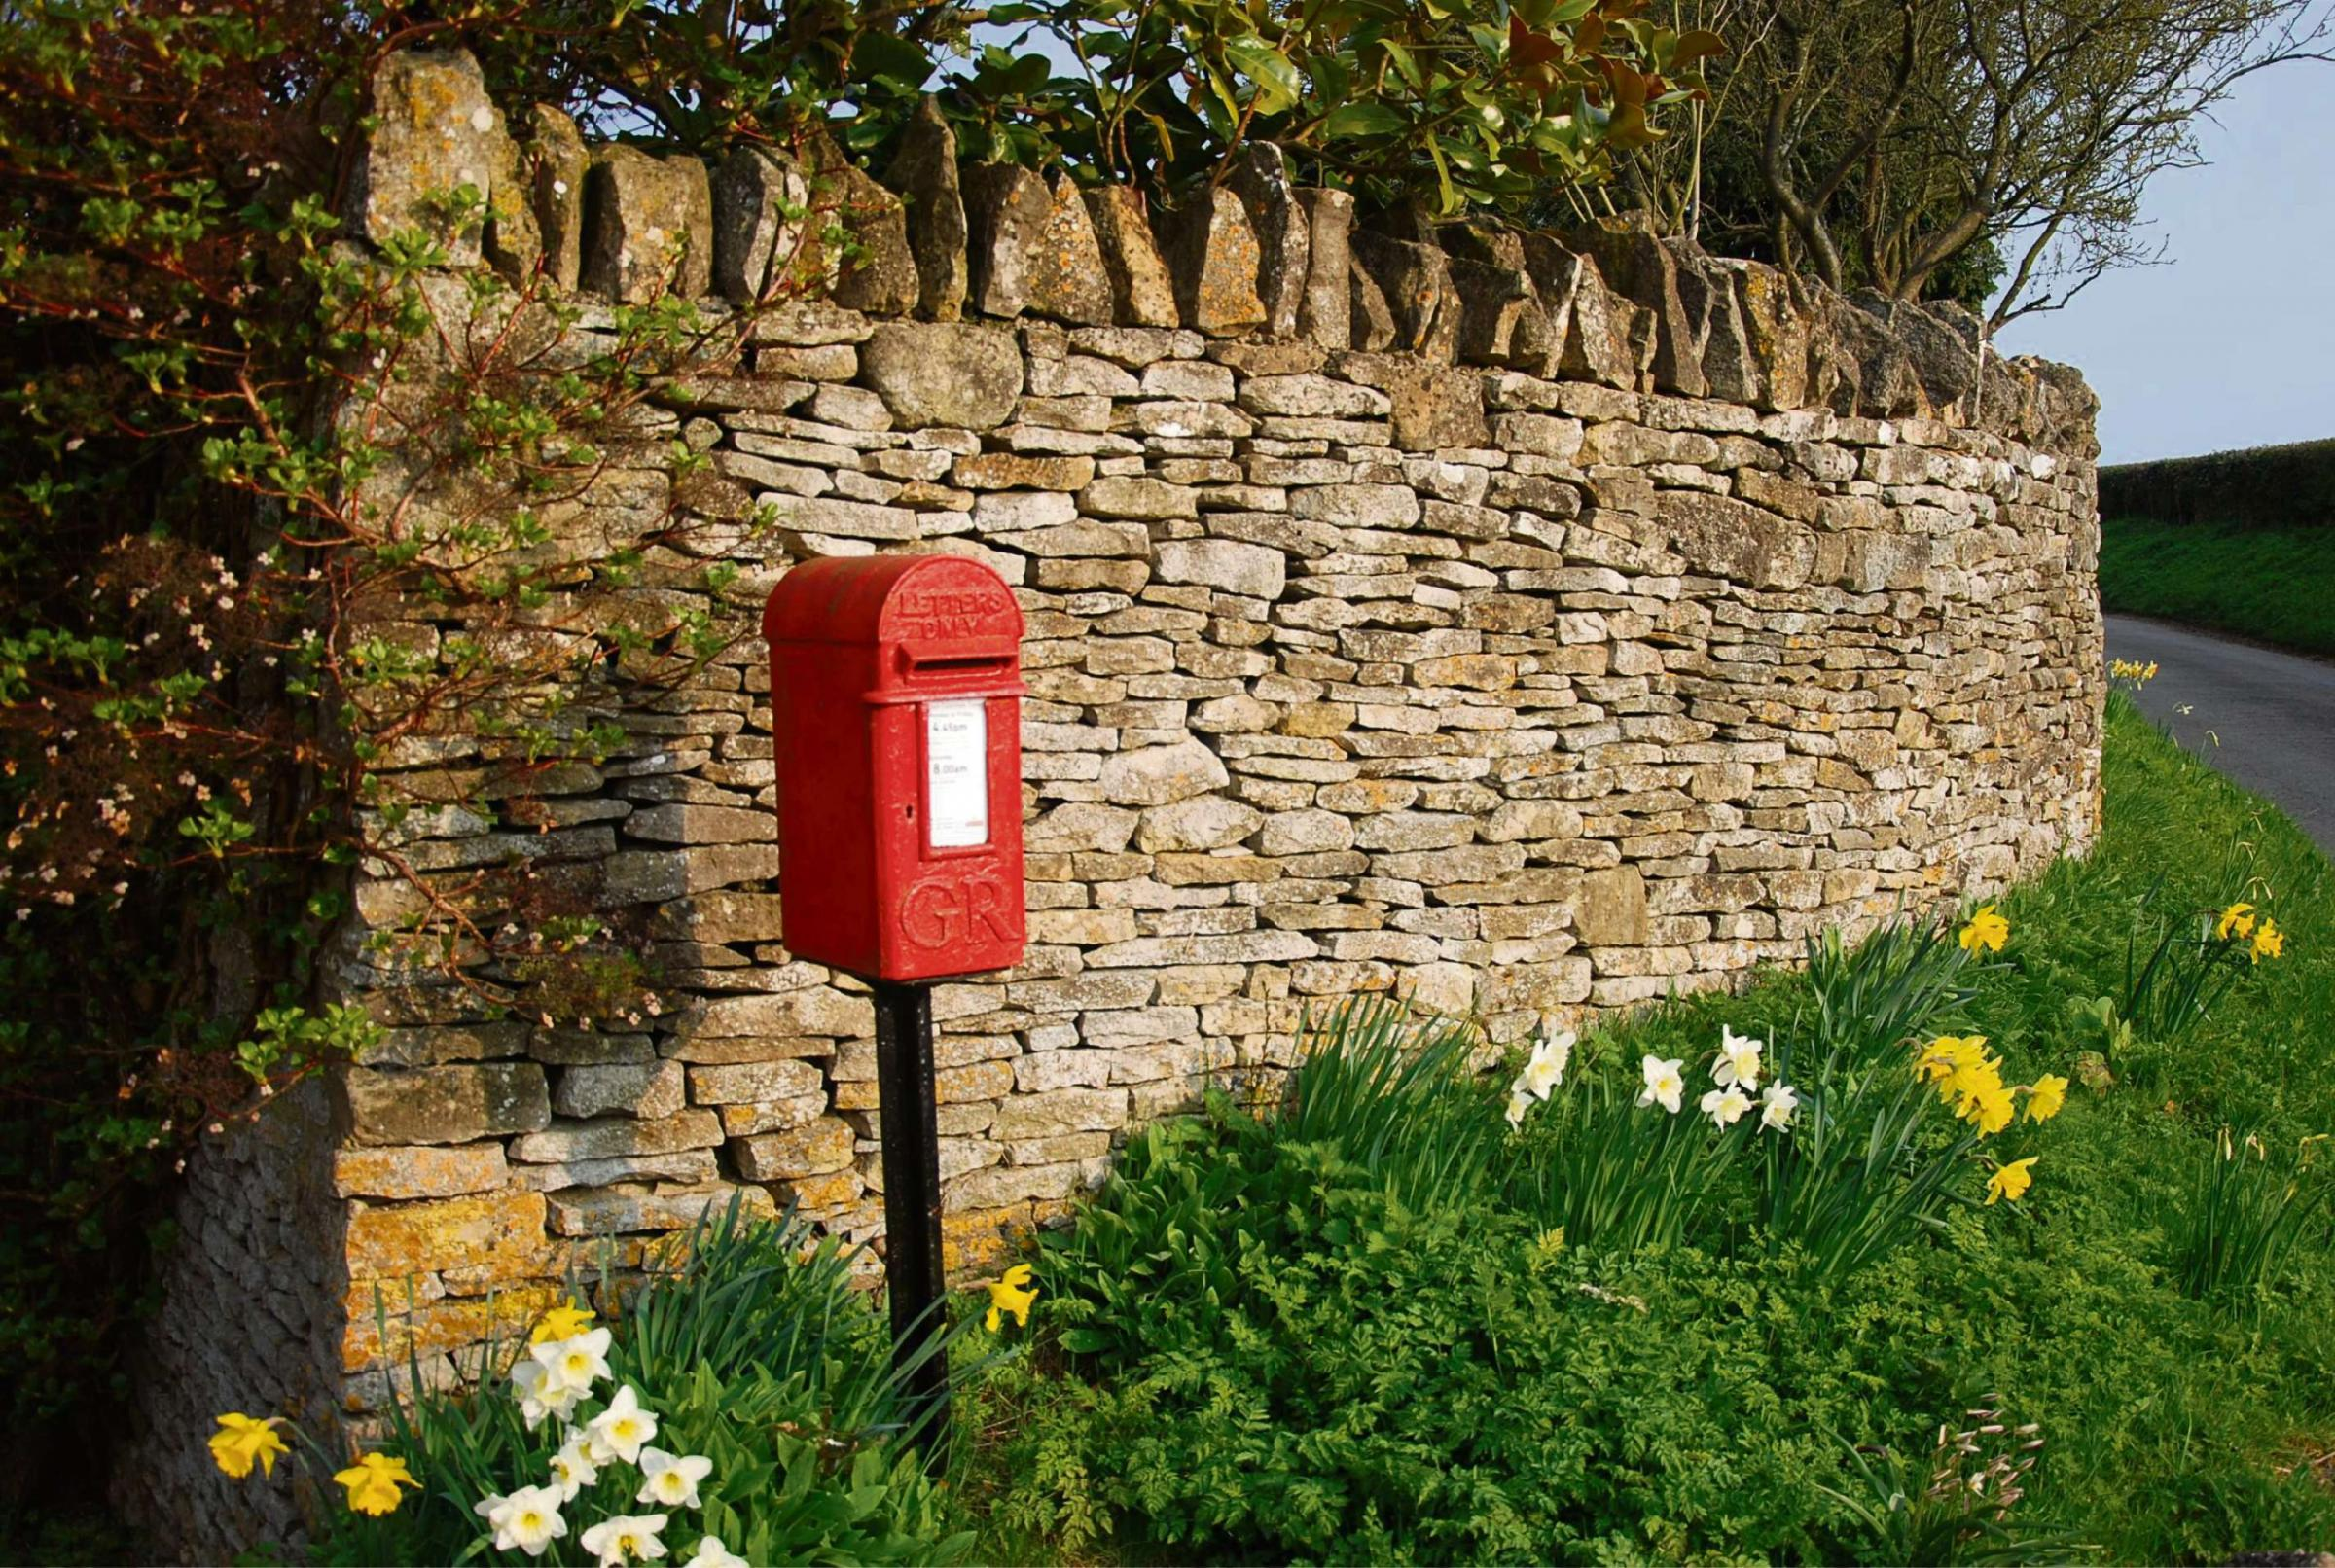 A traditional red post box surrounded by daffodils in Clevely taken by amateur photographer Paul Chapman, of Enstone, who was the winner of the 2013 Oxfordshire Cotswolds Photographic Competition